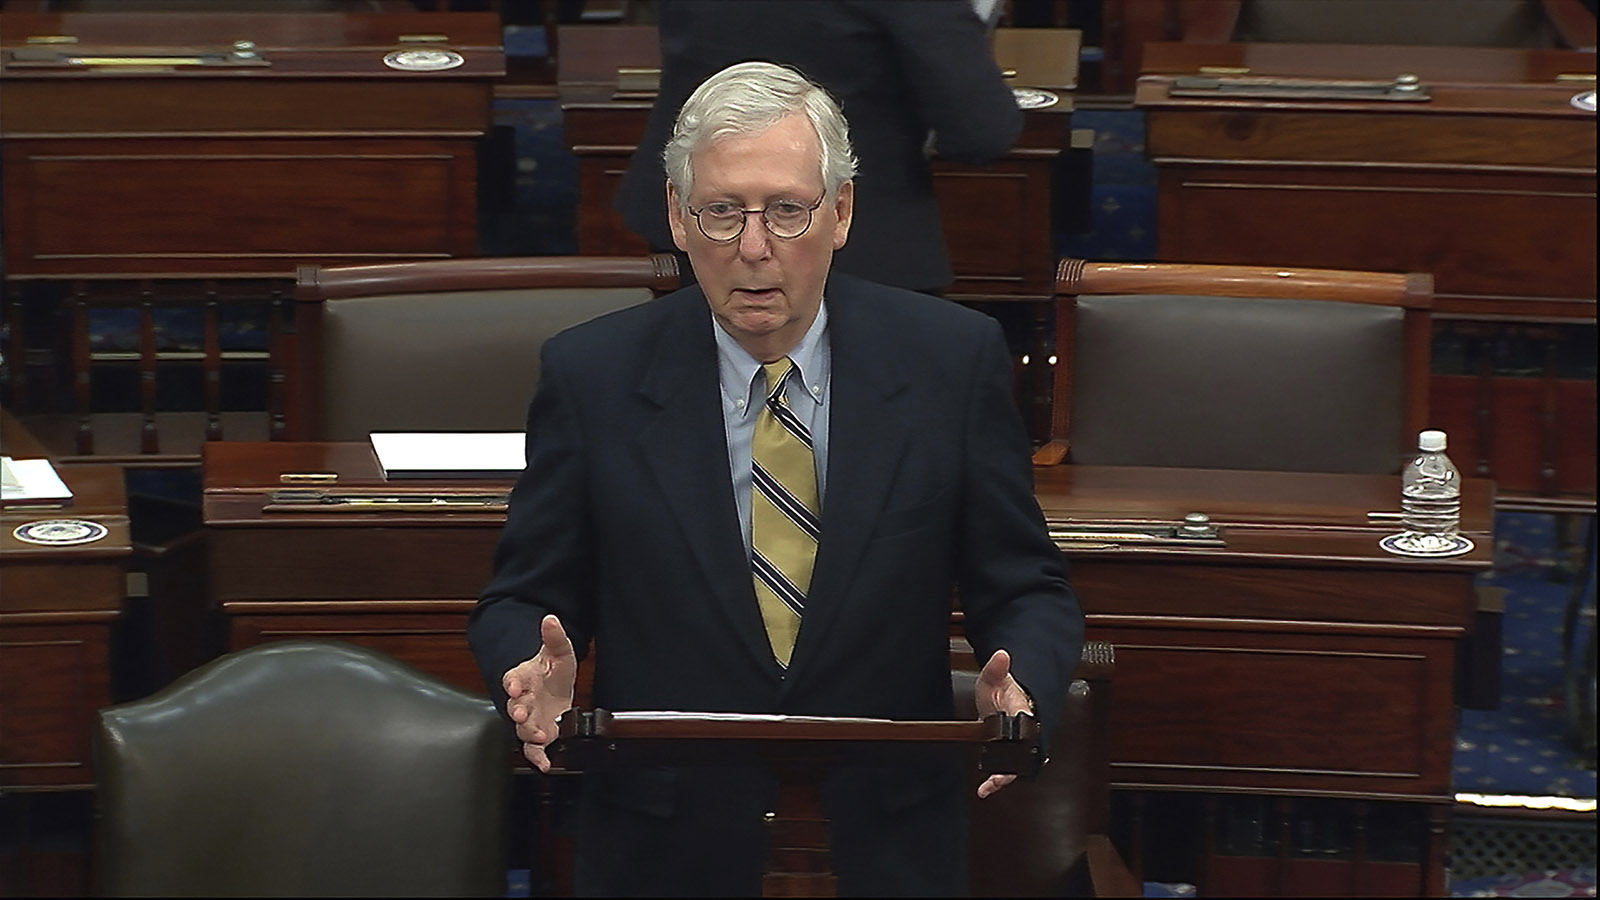 In this image from video, Senate Minority Leader Mitch McConnell of Ky., speaks after the Senate acquitted former President Donald Trump in his second impeachment trial in the Senate at the U.S. Capitol in Washington on Saturday, February 13.